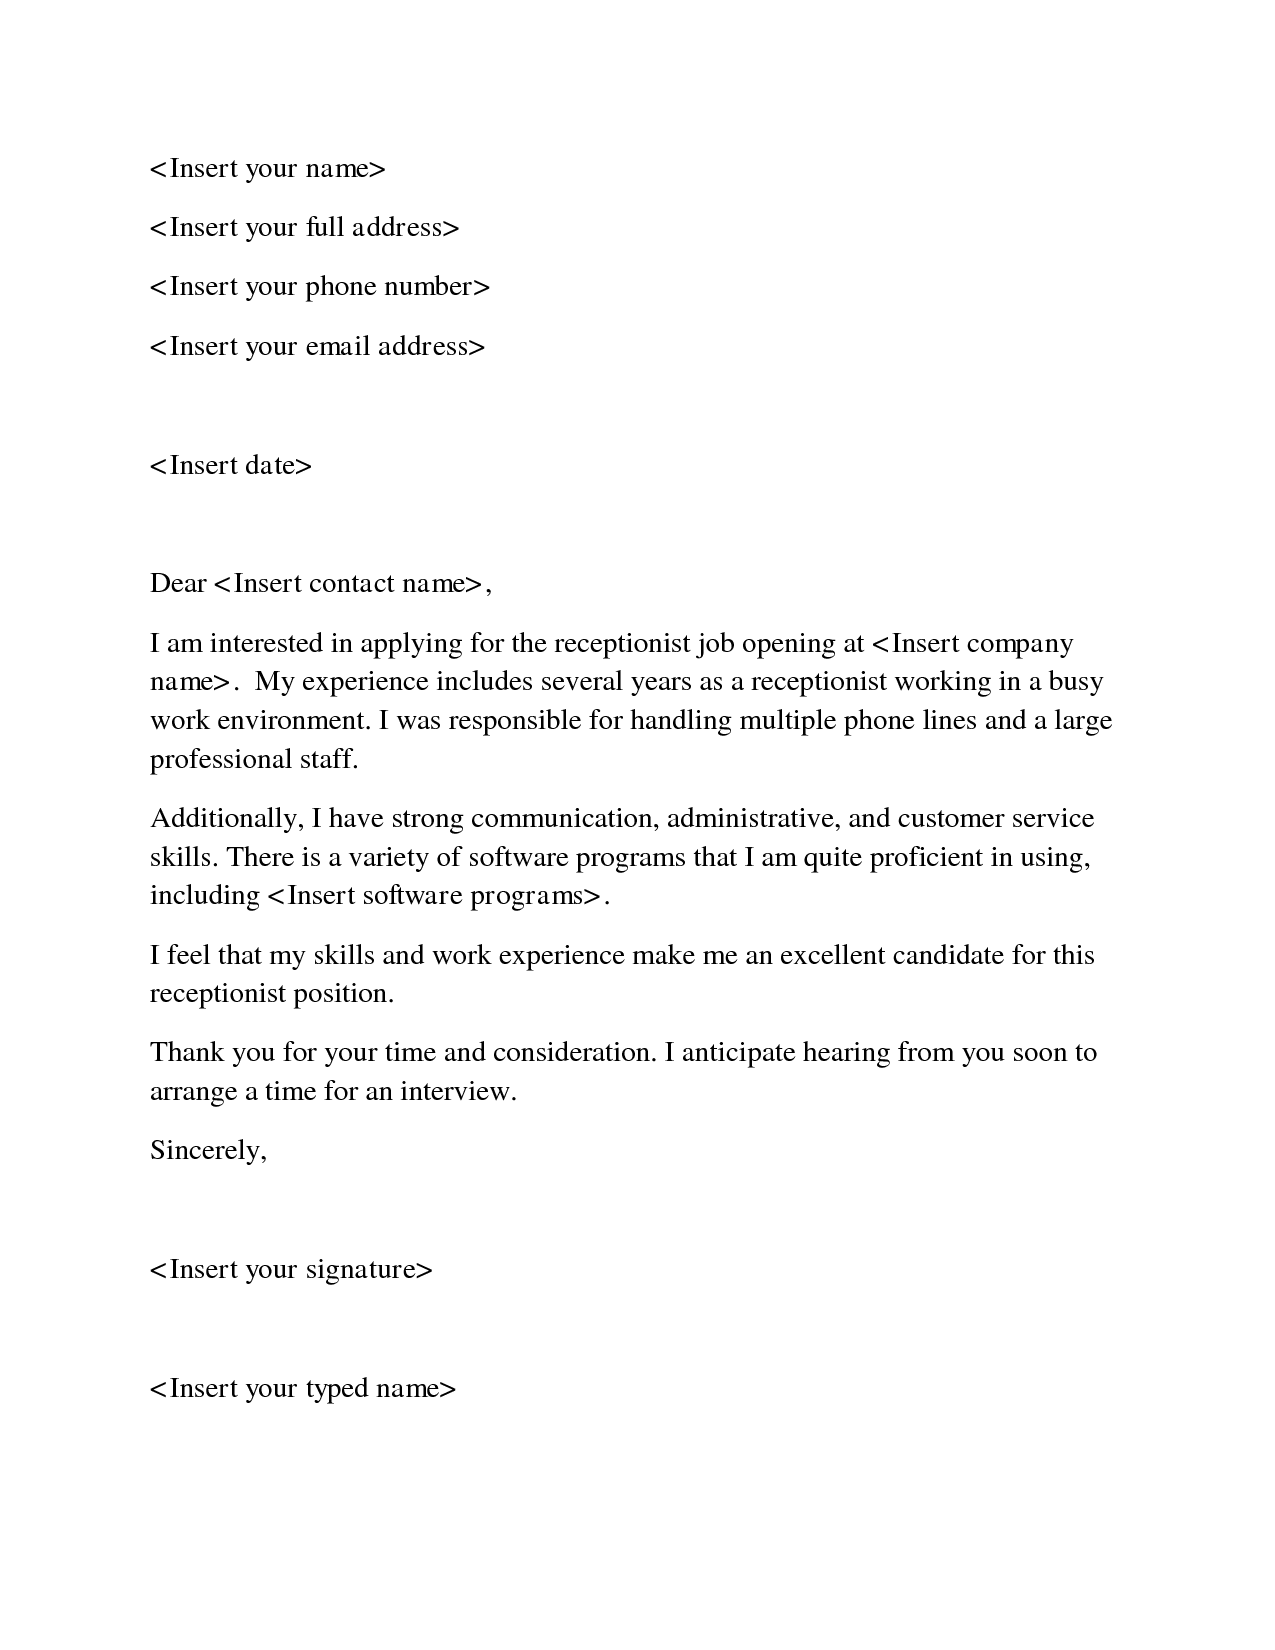 jobs application letter sample cover letter help receptionist resume top essay writingcover cover letter help receptionist resume top essay - Sample Resume For First Job Application